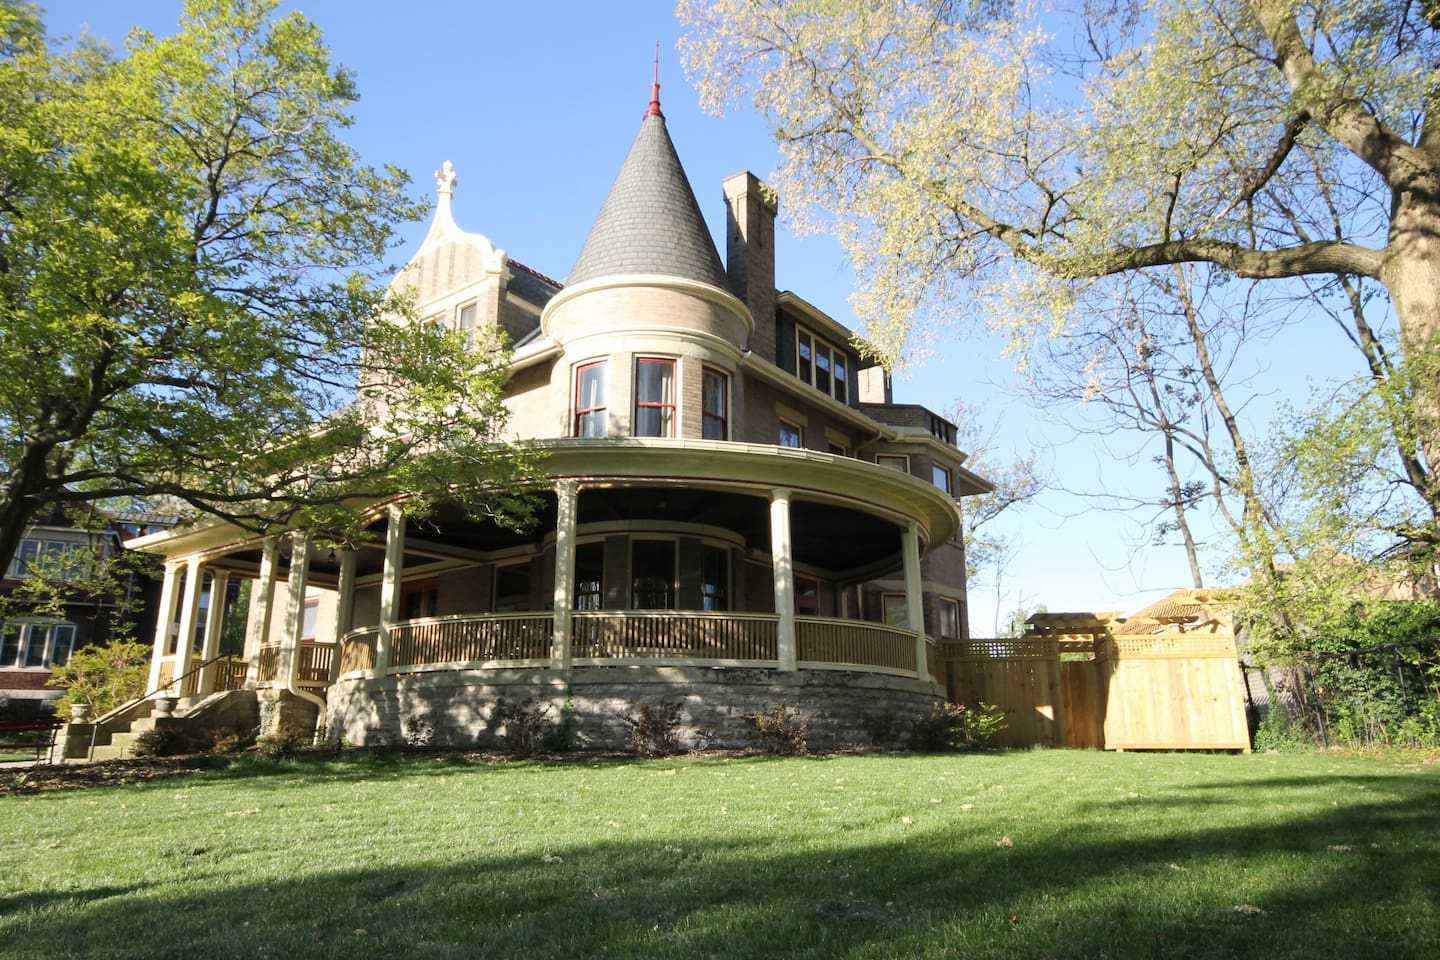 1896 Queen Anne with wrap around porch.